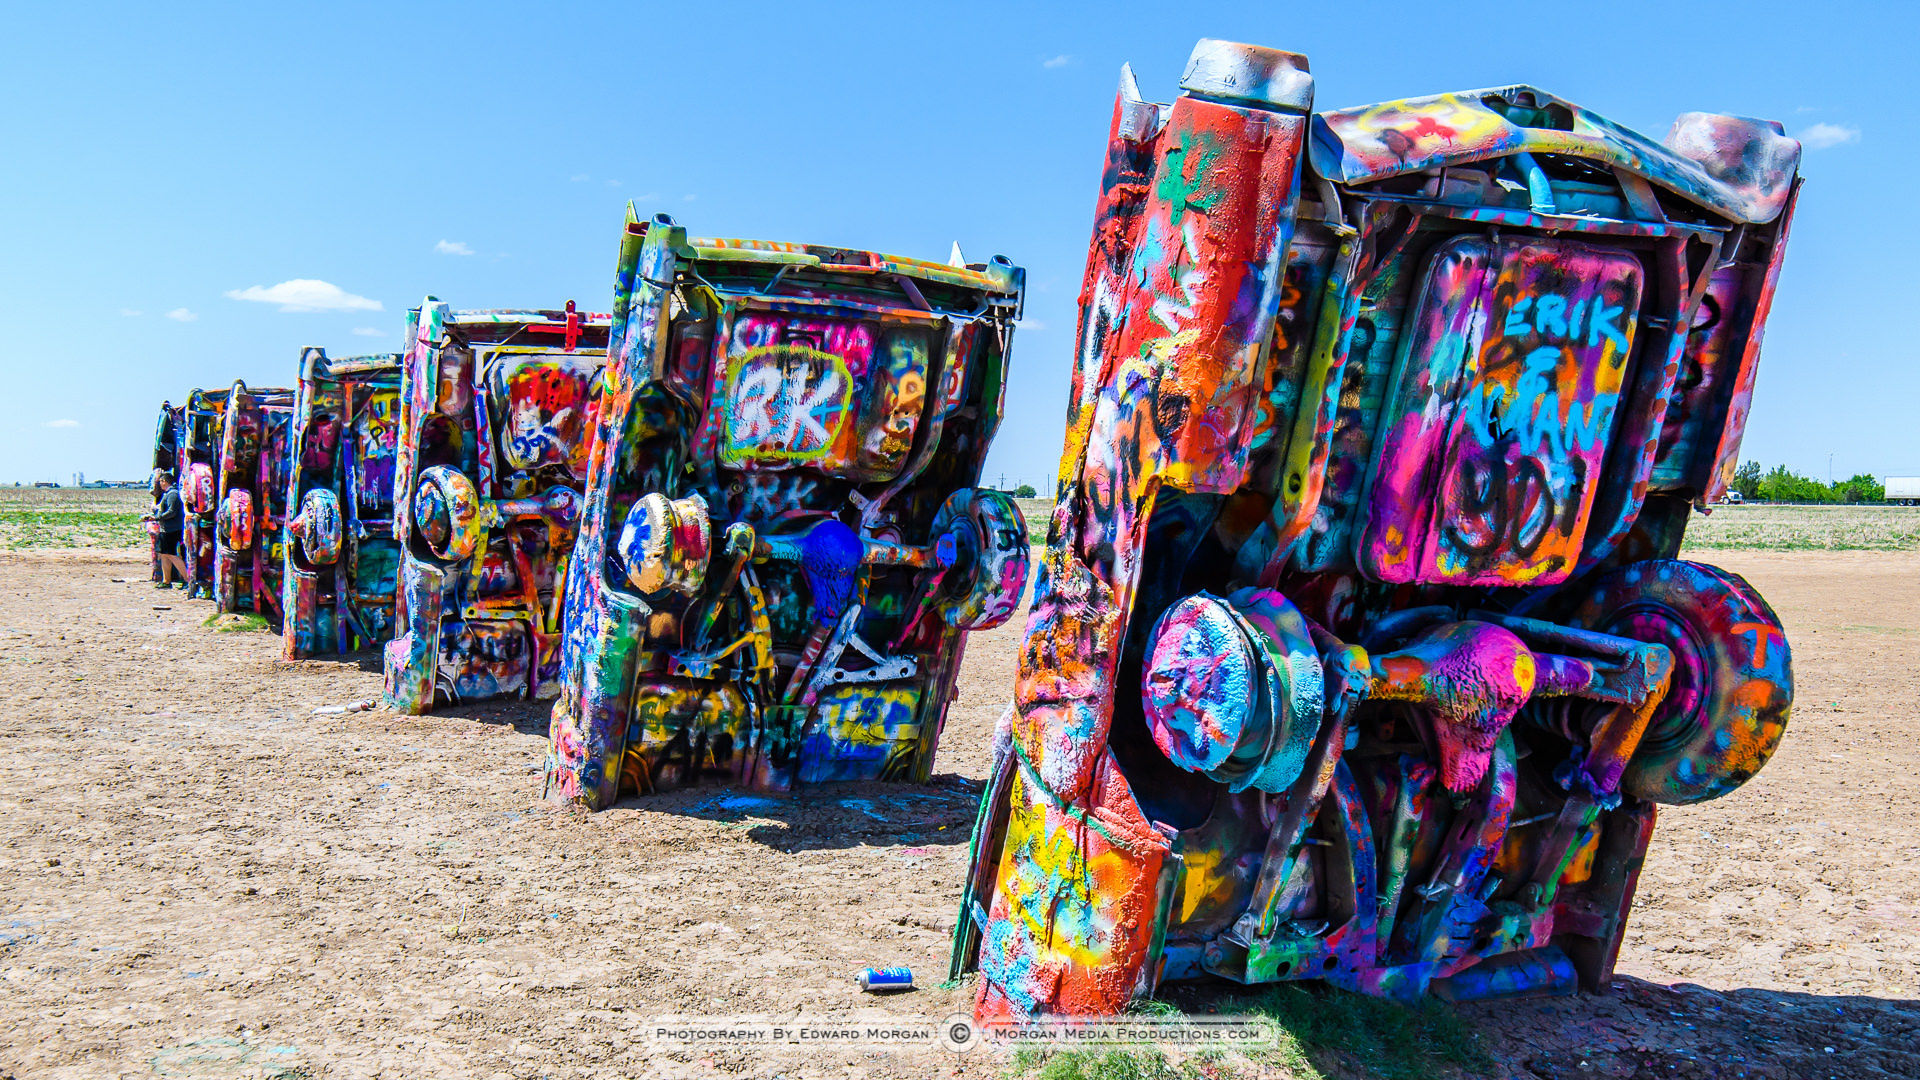 cadillac ranch photos from amarillo texas morgan media productions. Black Bedroom Furniture Sets. Home Design Ideas